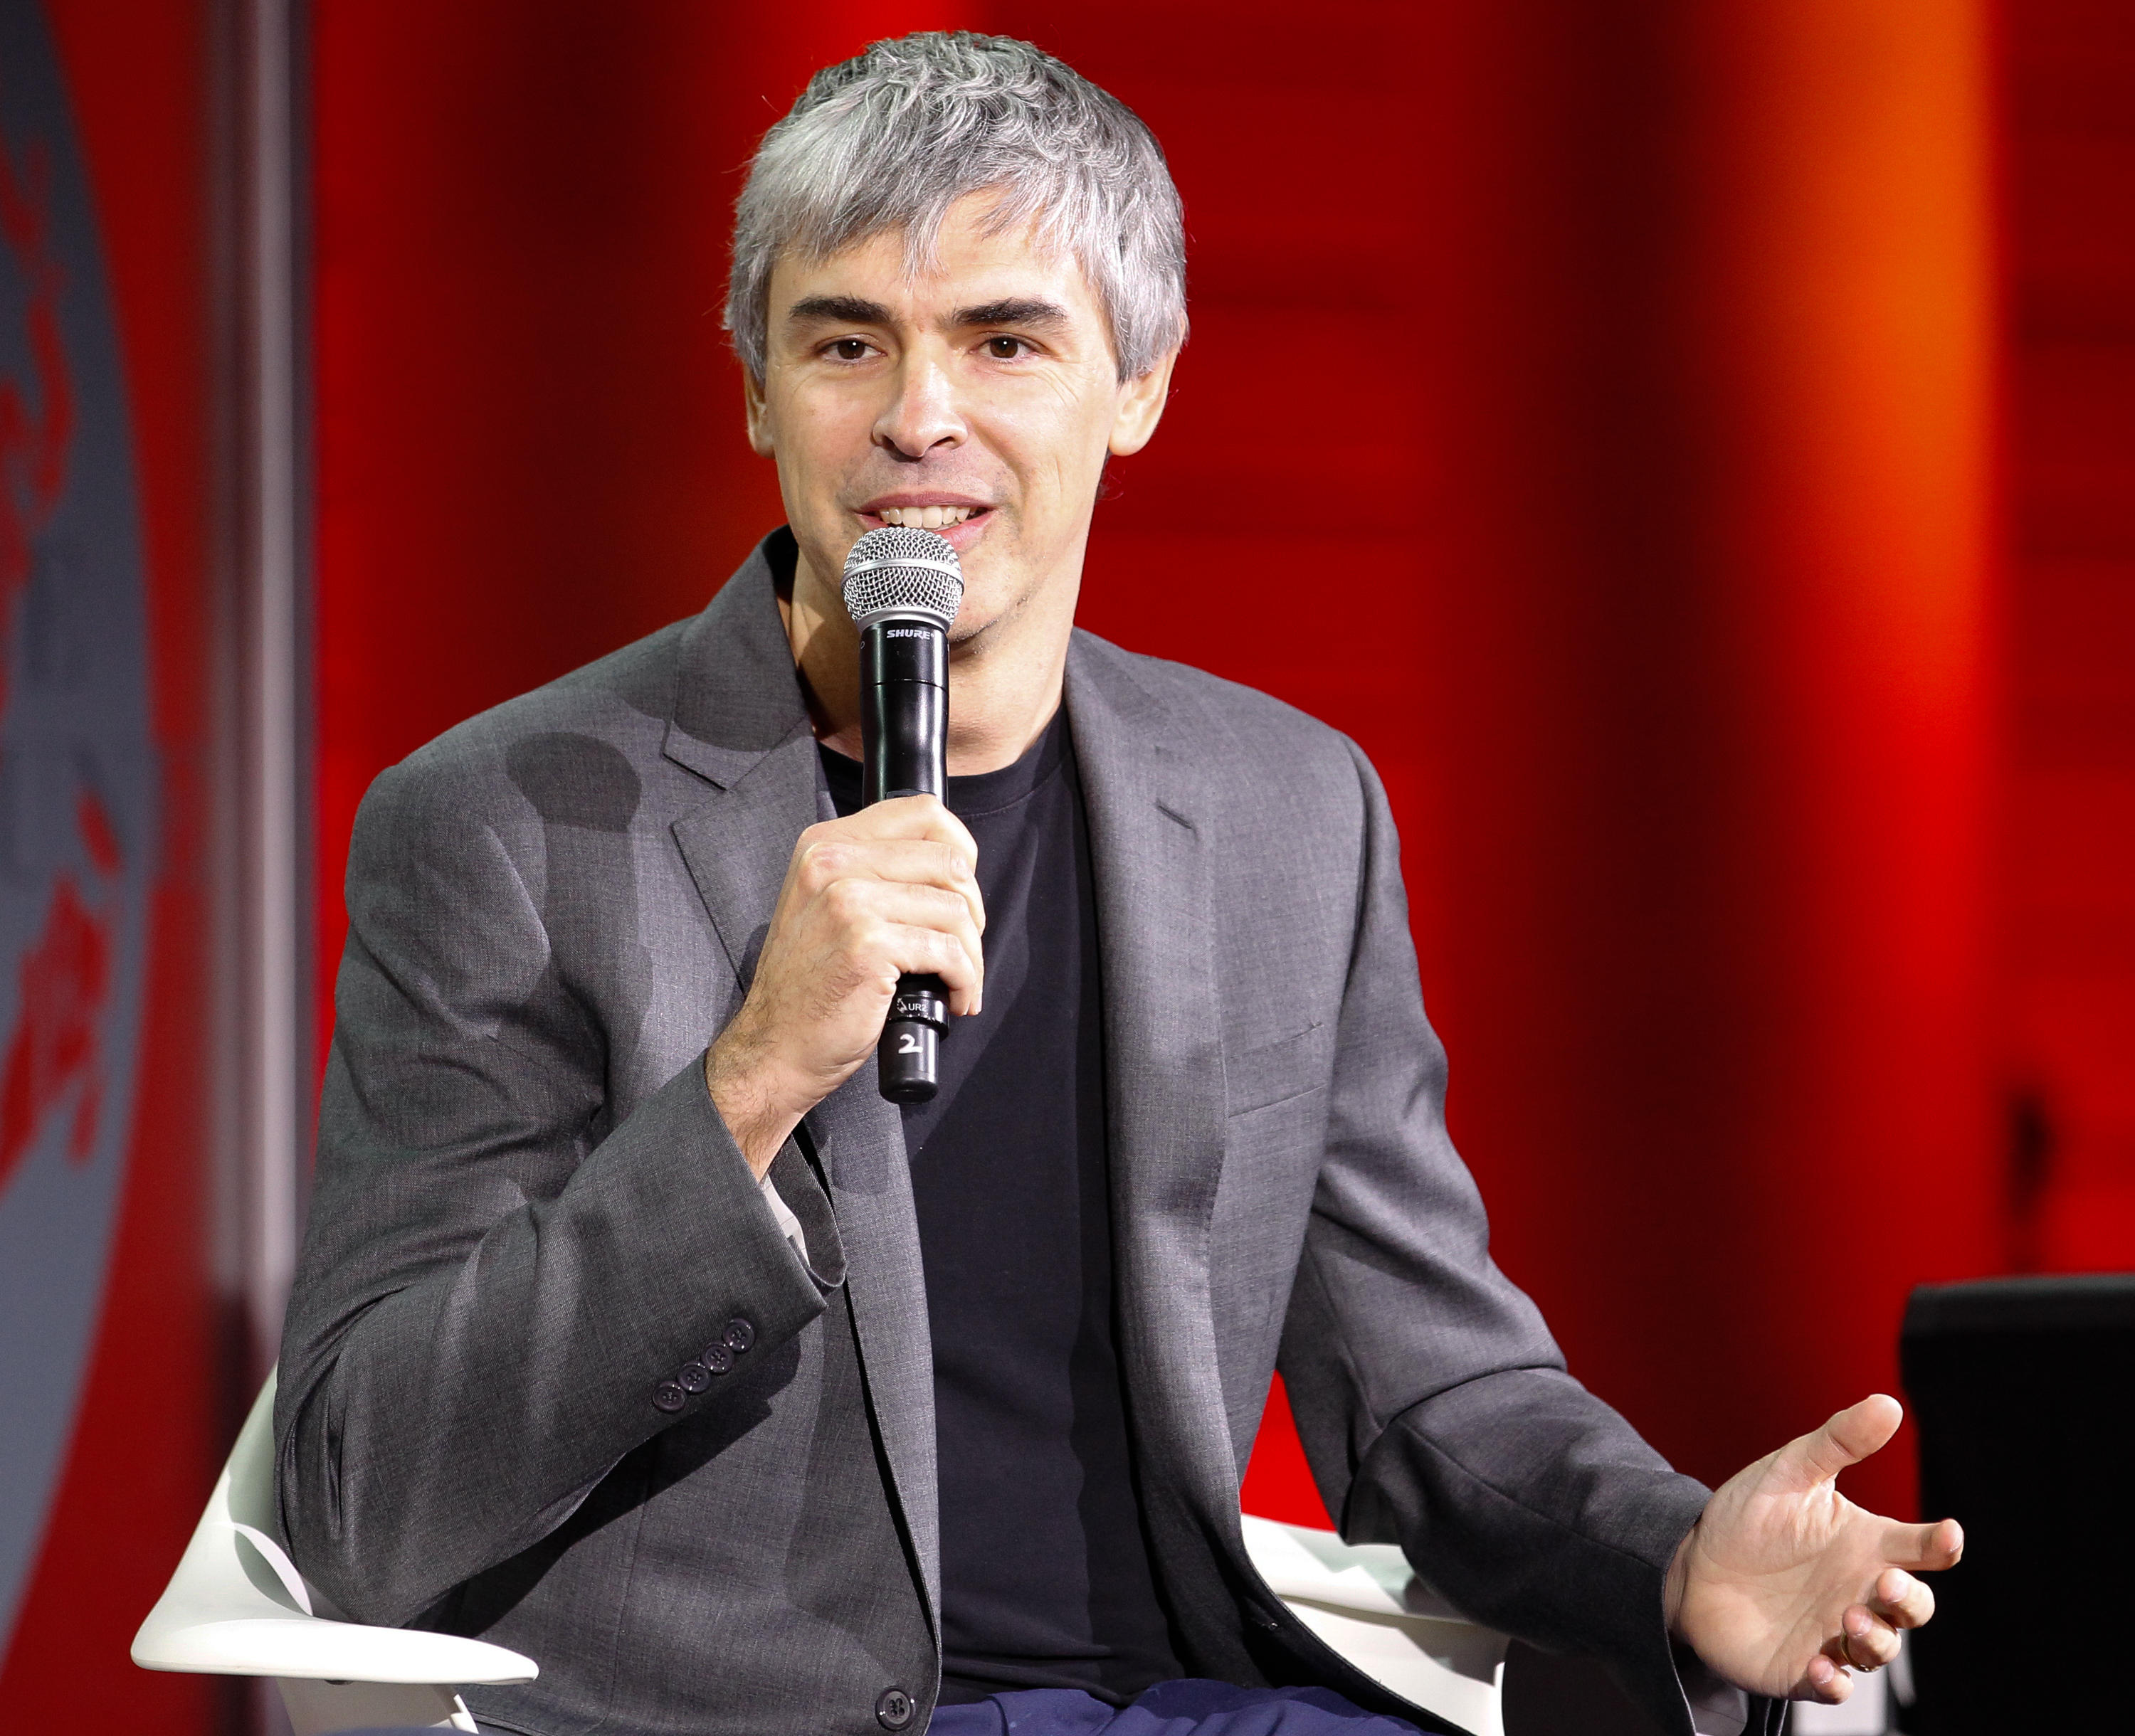 <p>Alphabet CEO Larry Page was invited to testify before at a Senate Intelligence hearing with Facebook COO Sheryl Sandberg and Twitter CEO Jack Dorsey, but Page declined.</p>